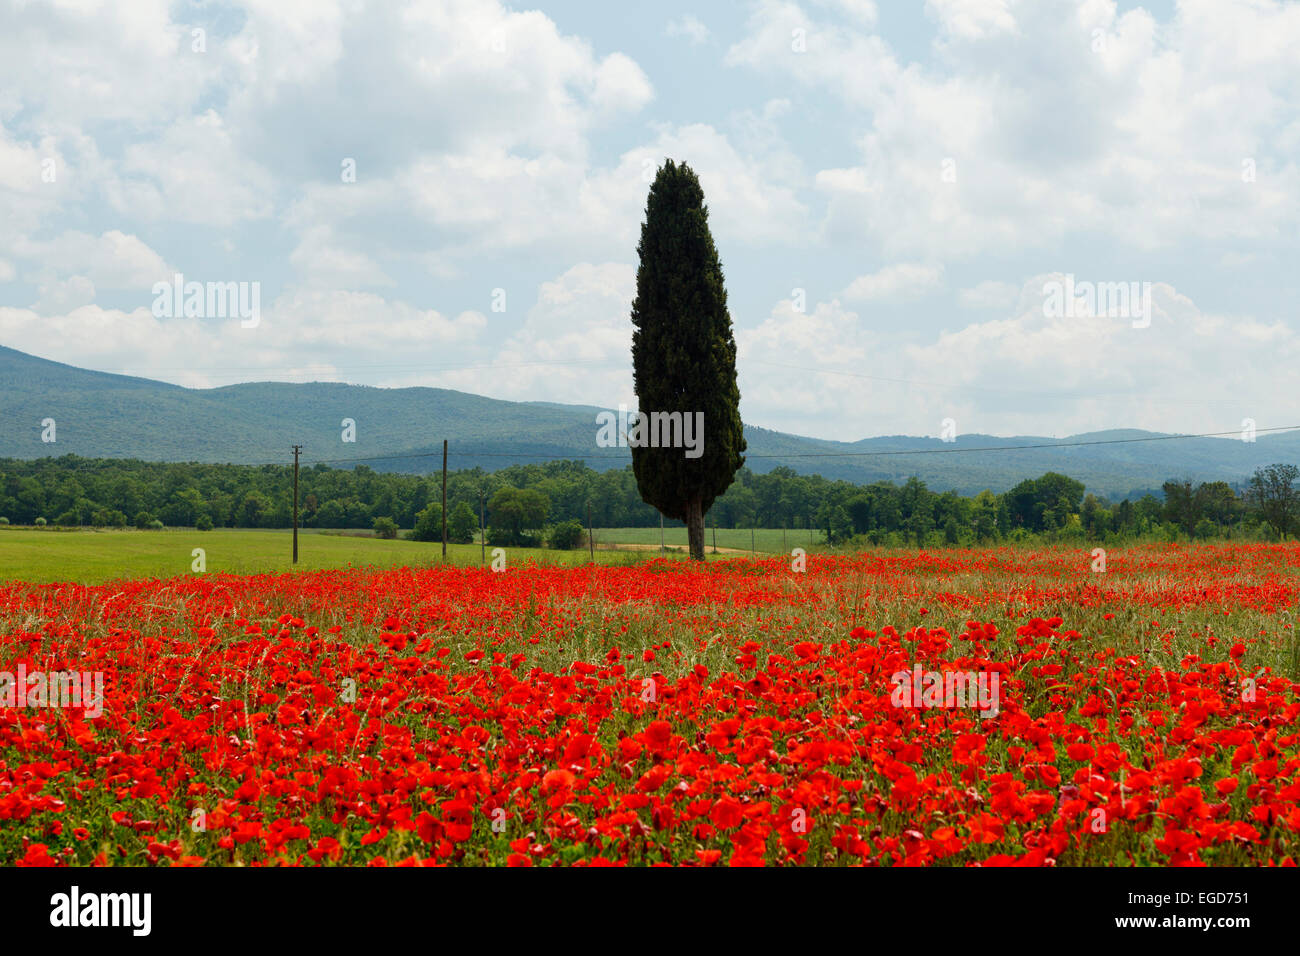 Cypress in a red poppy field near Colle di Val d Elsa, Tuscany, Italy, Europe - Stock Image